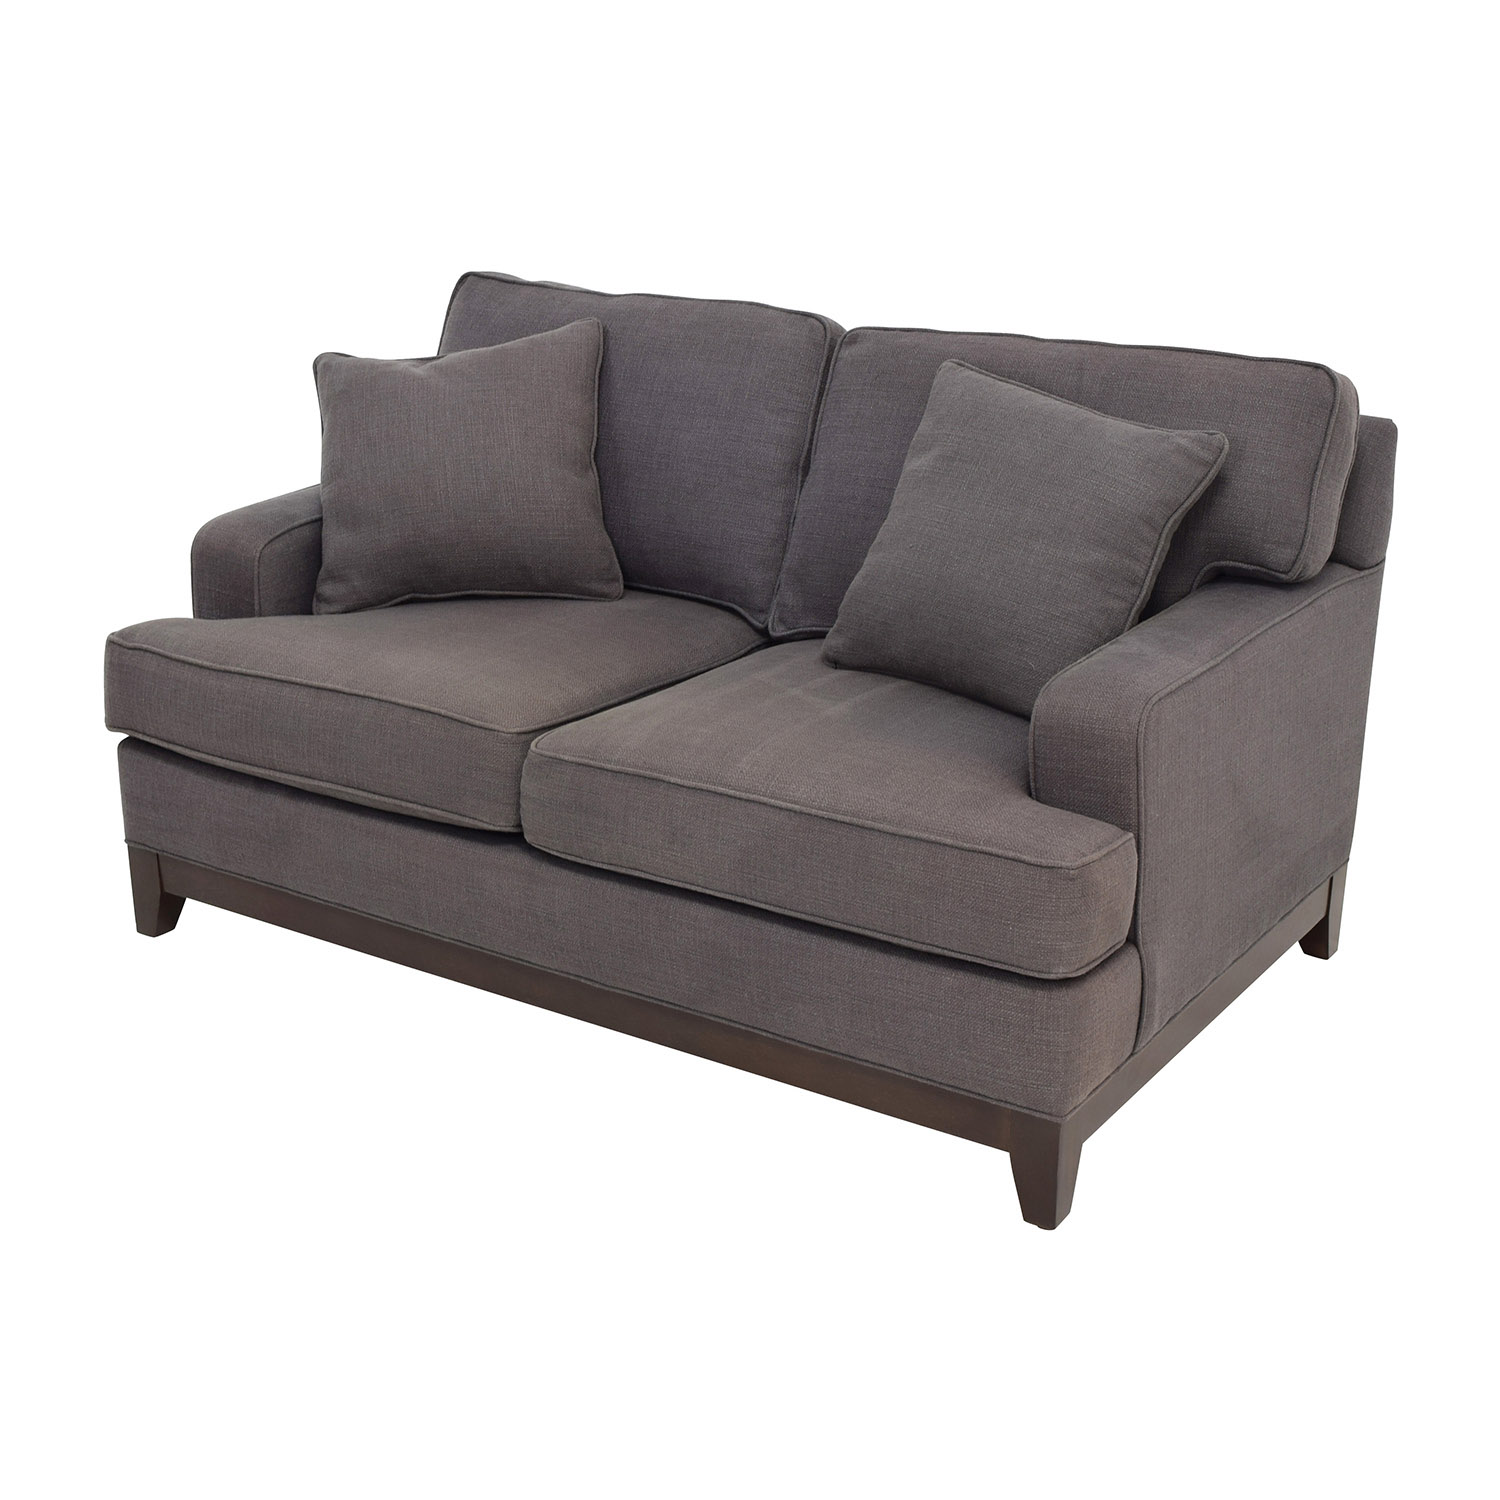 83 off ethan allen ethan allen arcata gray loveseat sofas for Classic loveseat